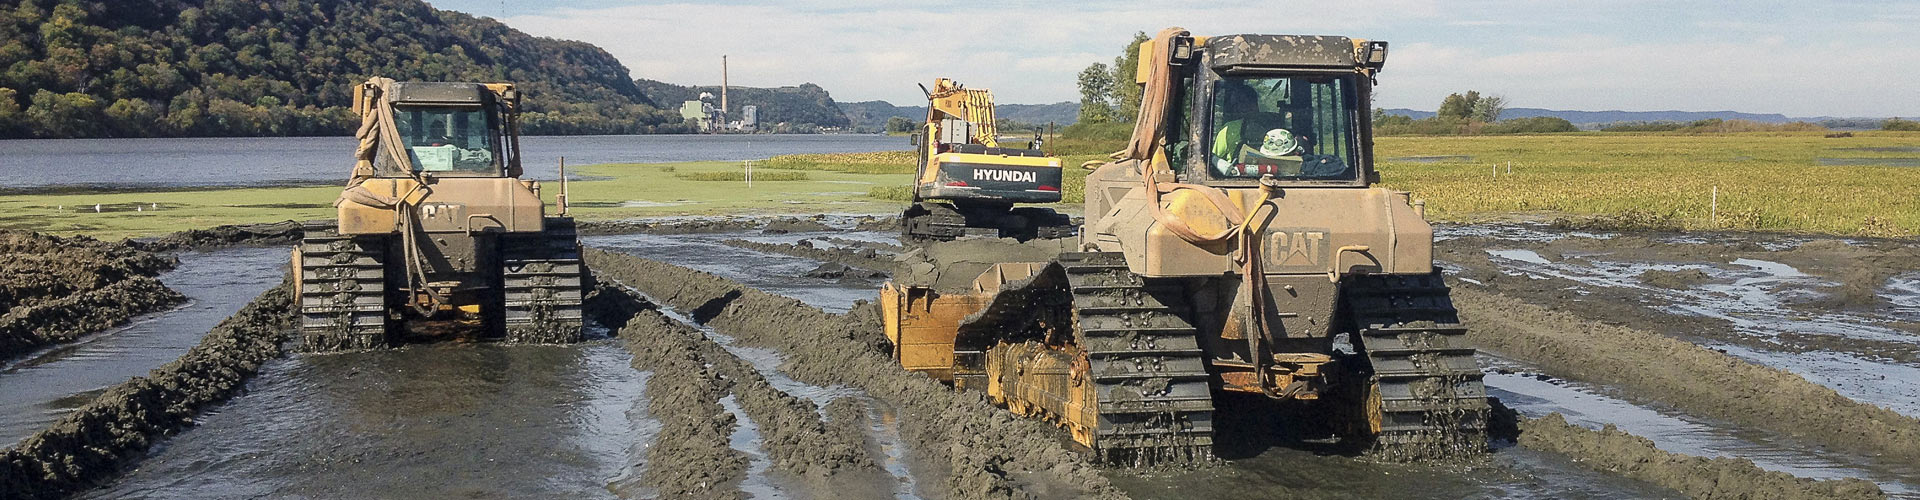 Environmental Dredging, Mechanical Dredging, Environmental Remediation, Environmental Cleanup, Weltand Remediation, Environmental Restoration, Wetland Restoration, Wetland Rehabilitation